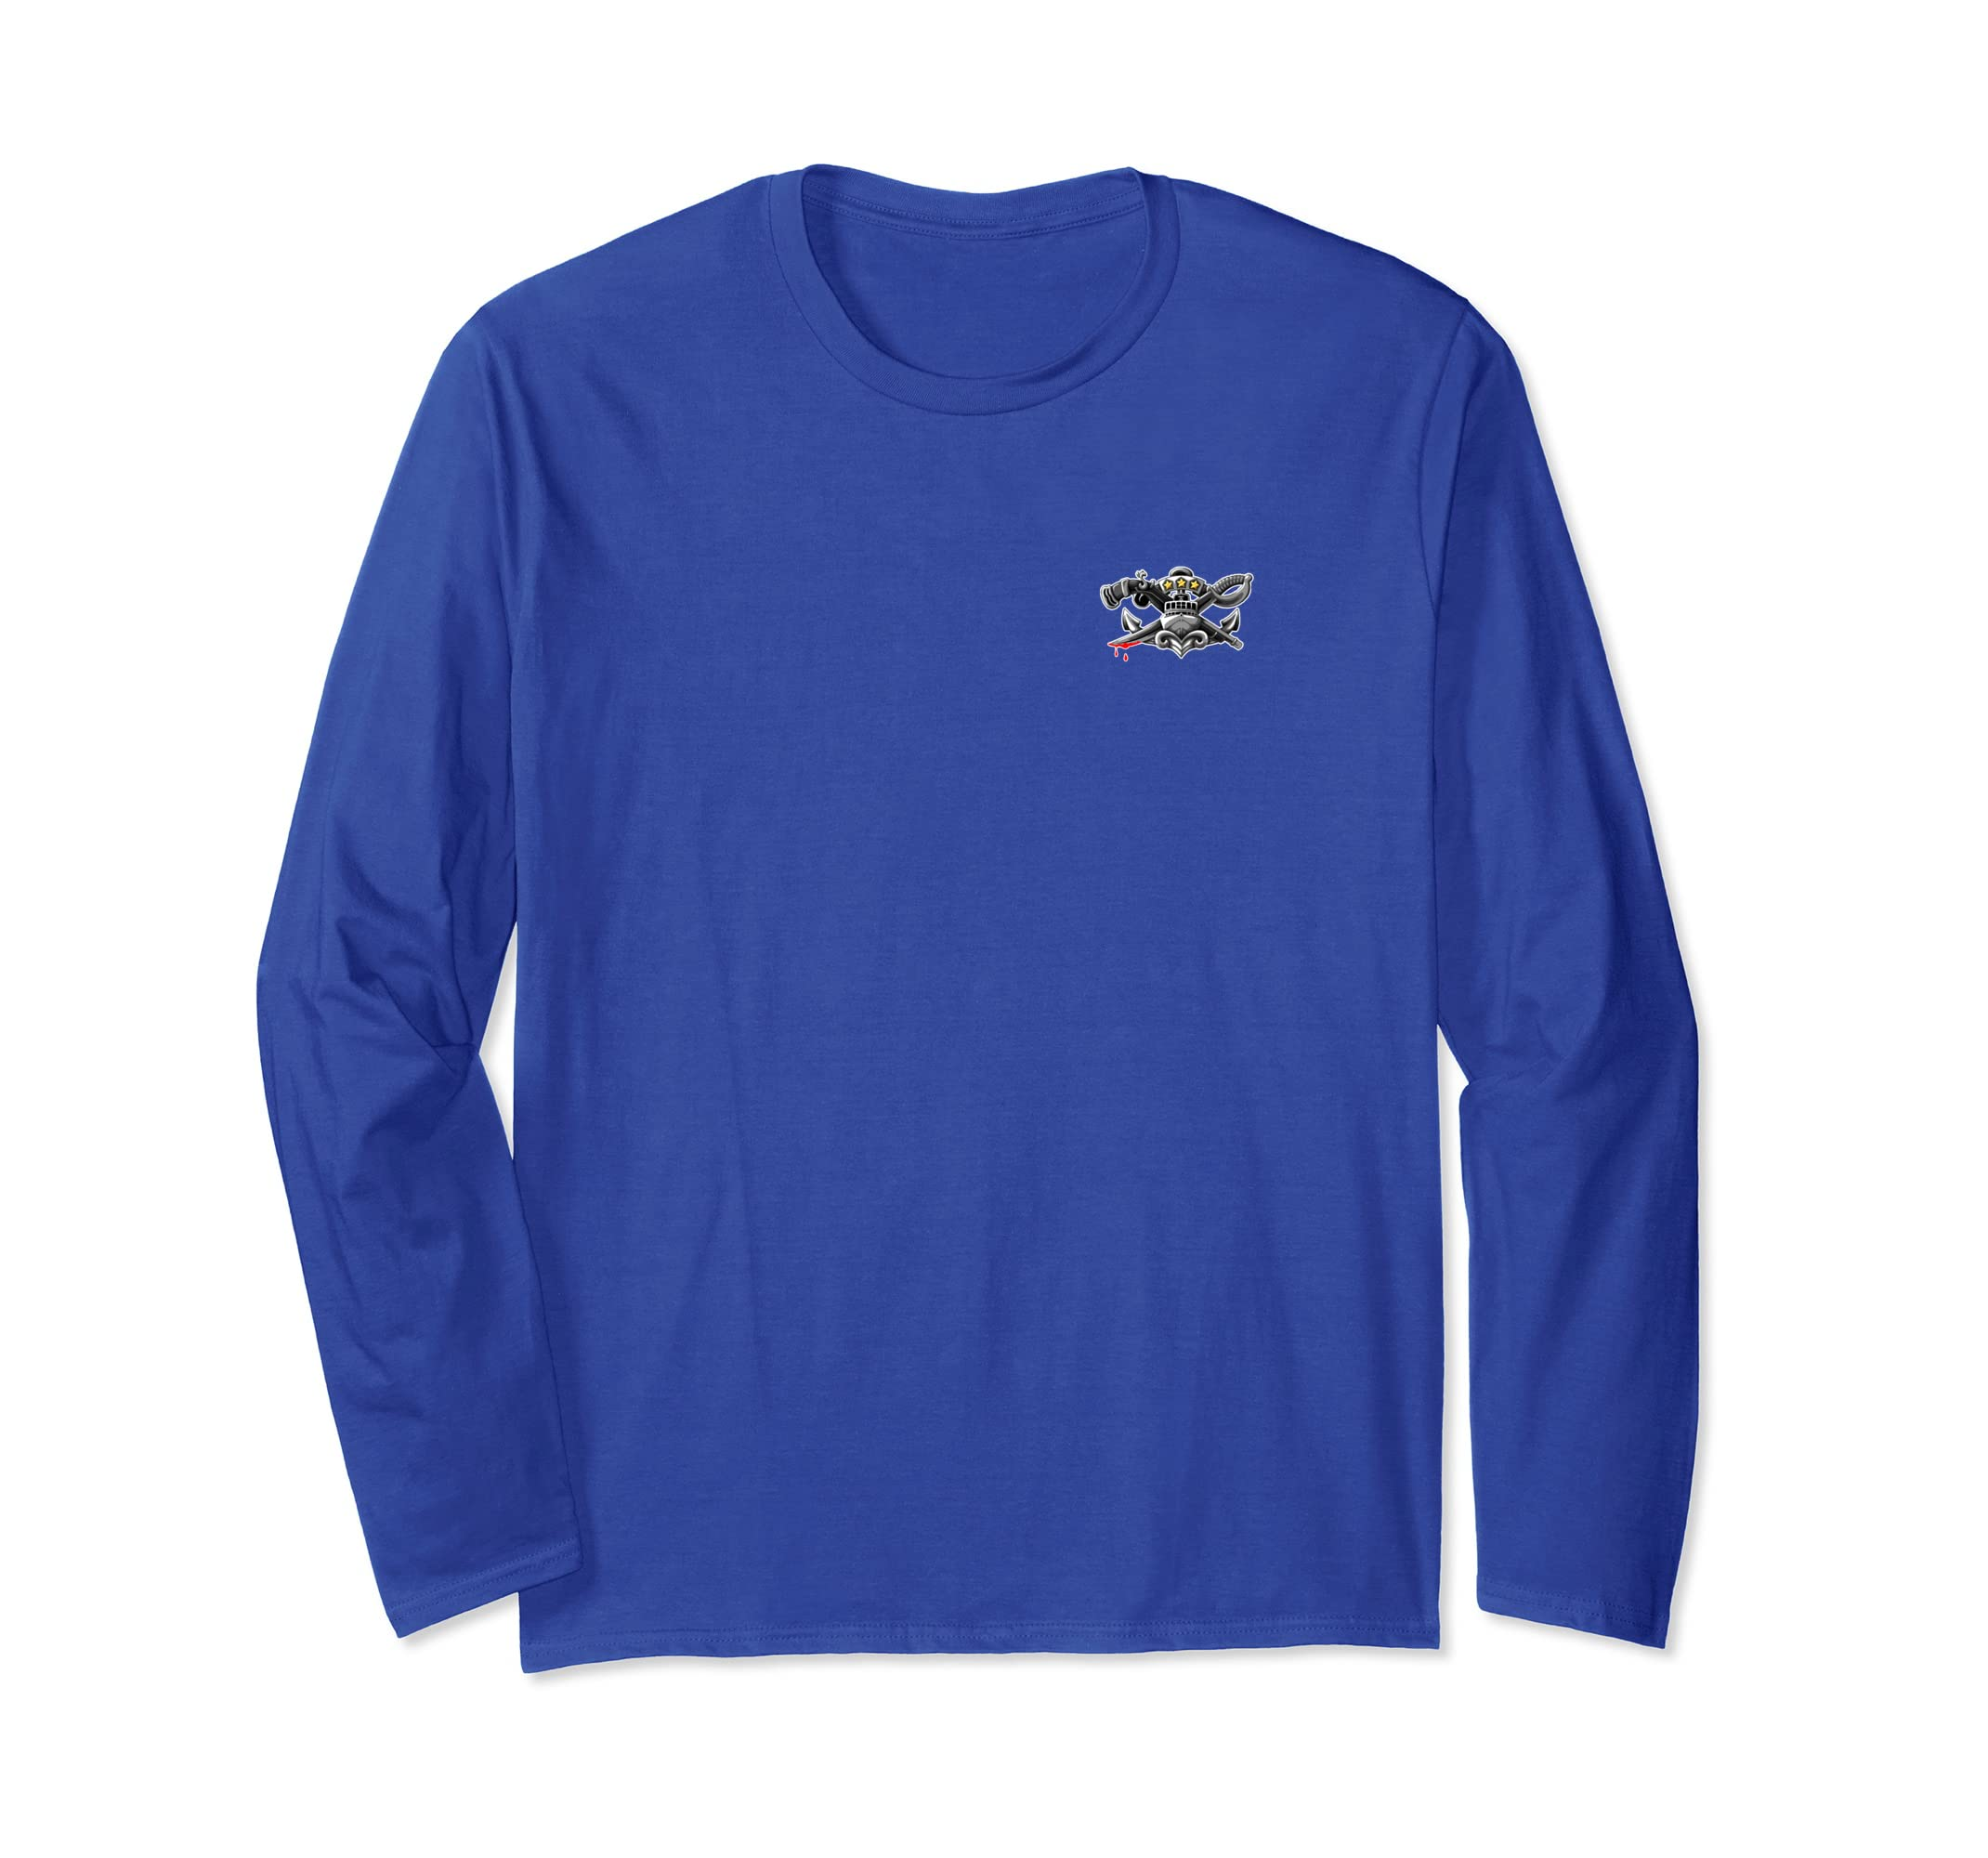 7ade9c7ced Amazon.com: Dirty Boat Guy DBG SWCC Long Sleeve T Shirt!: Clothing